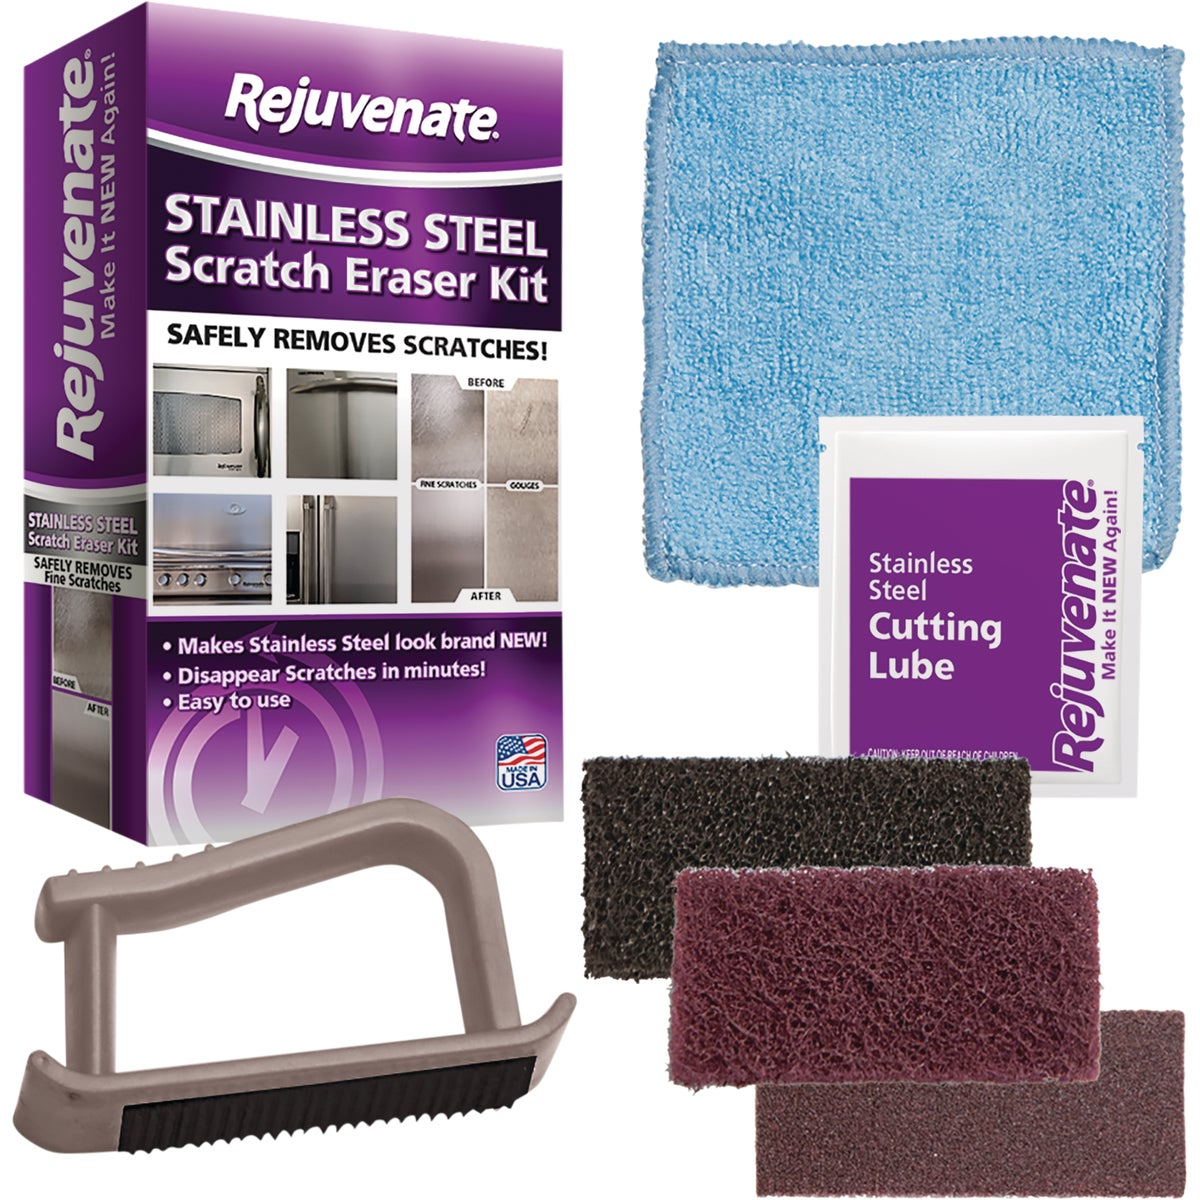 Stainless Steel Scratch Eraser Appliance Cleaner Kit, RJSSRKIT